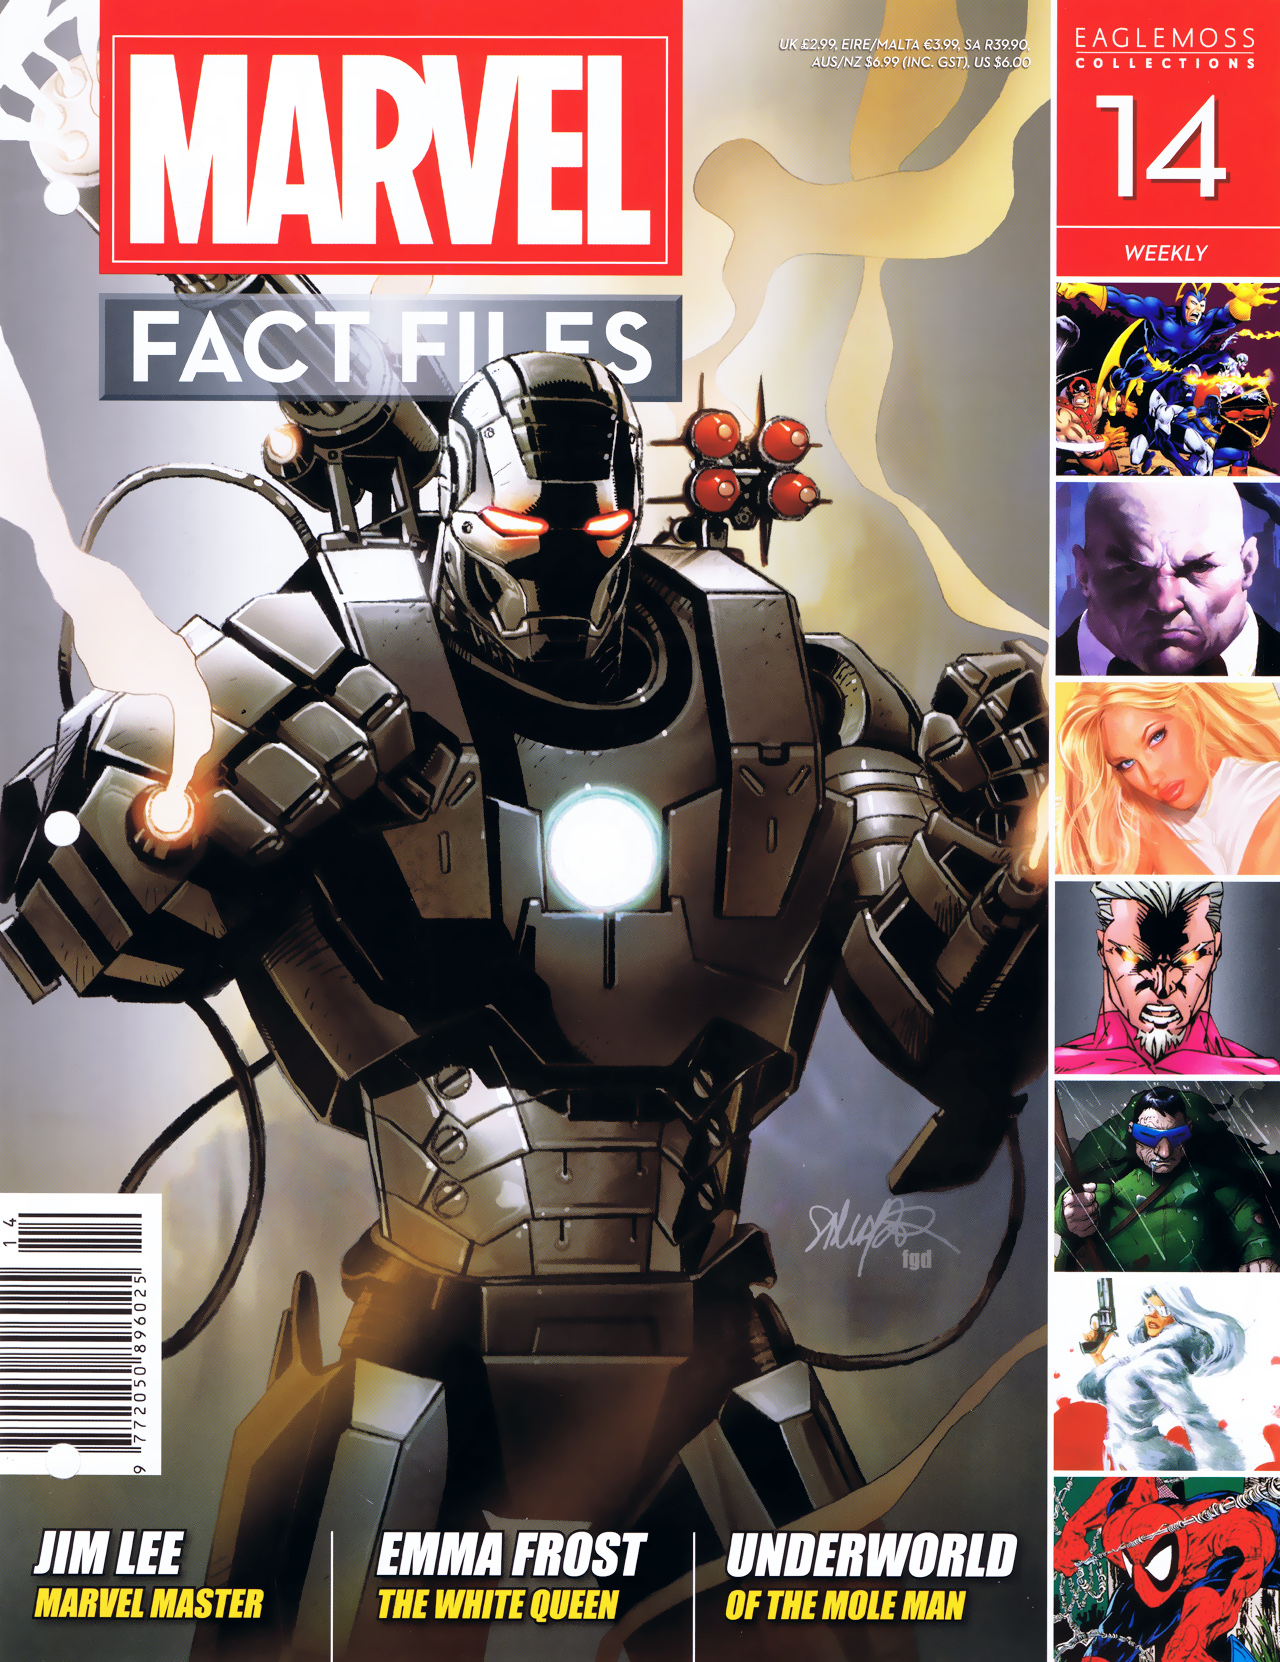 Marvel Fact Files 14 Page 1